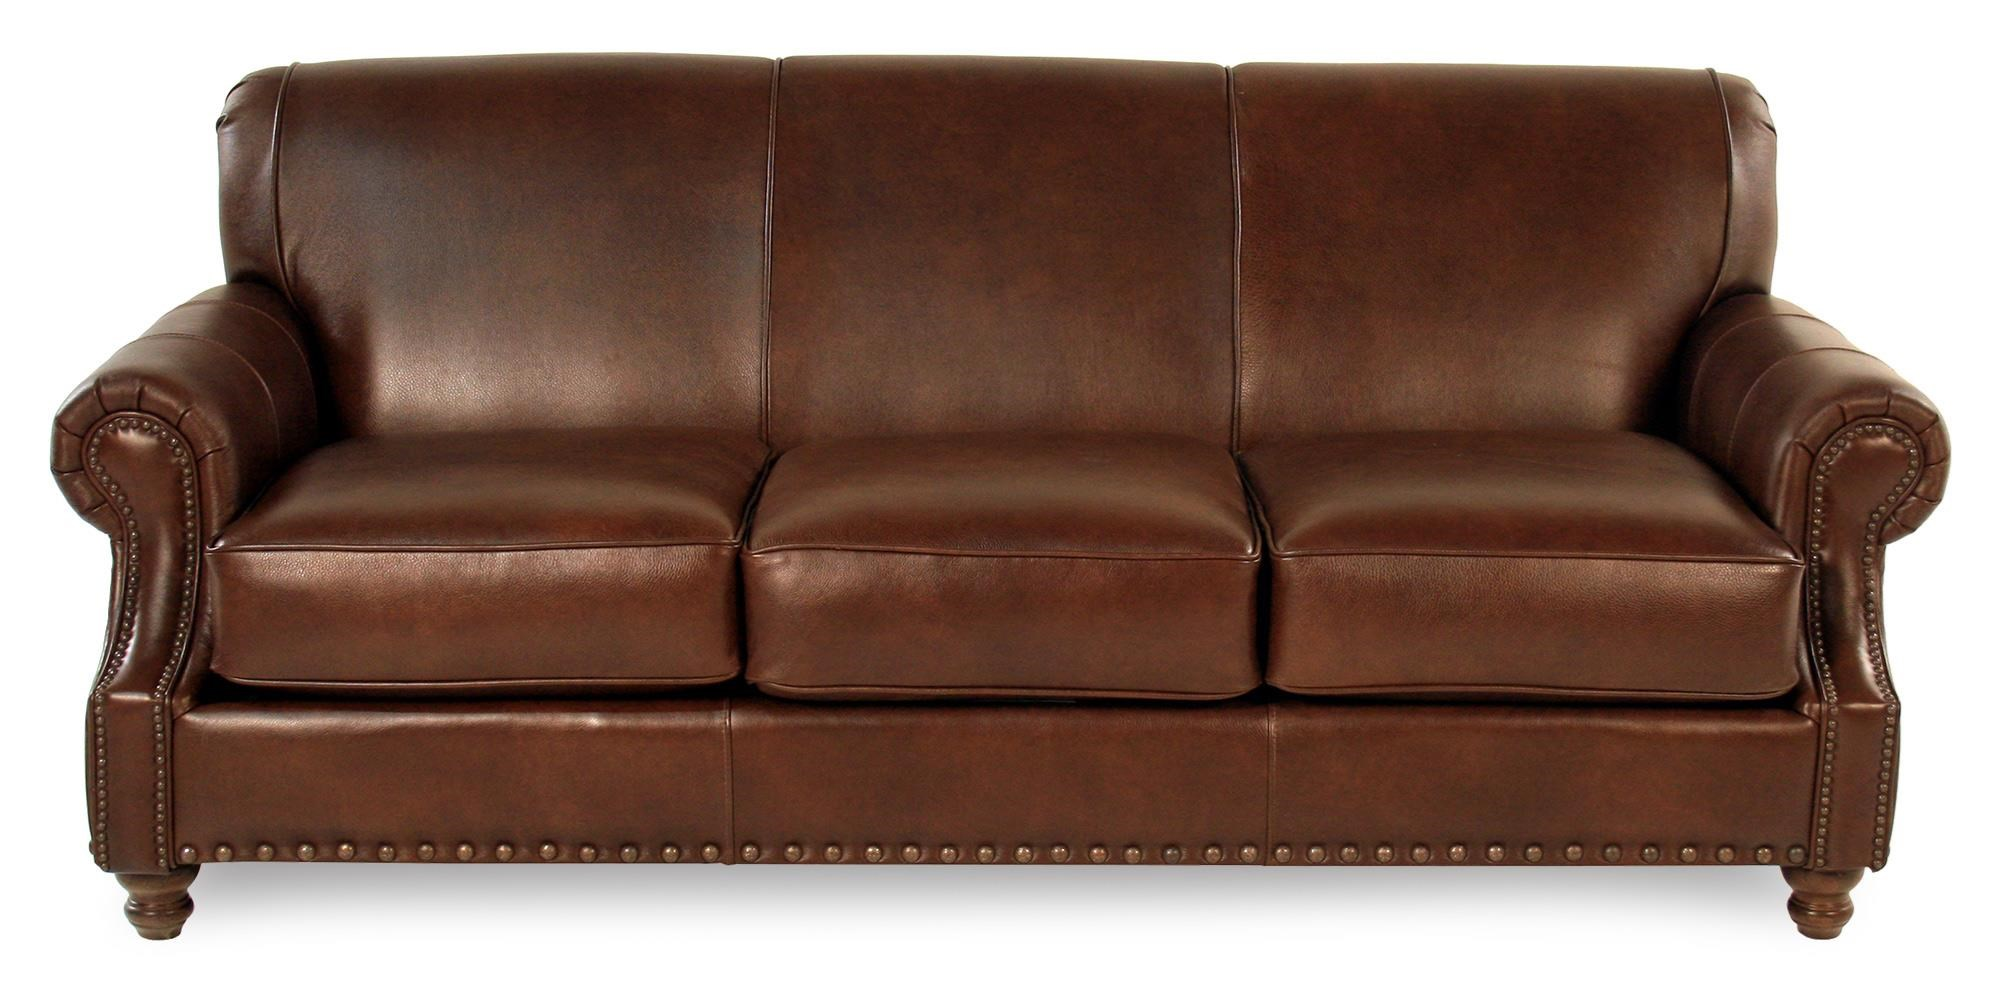 Genial Simple Elegance Abilene Traditional Leather Sofa   Item Number:  LT30410S CHESTNUT